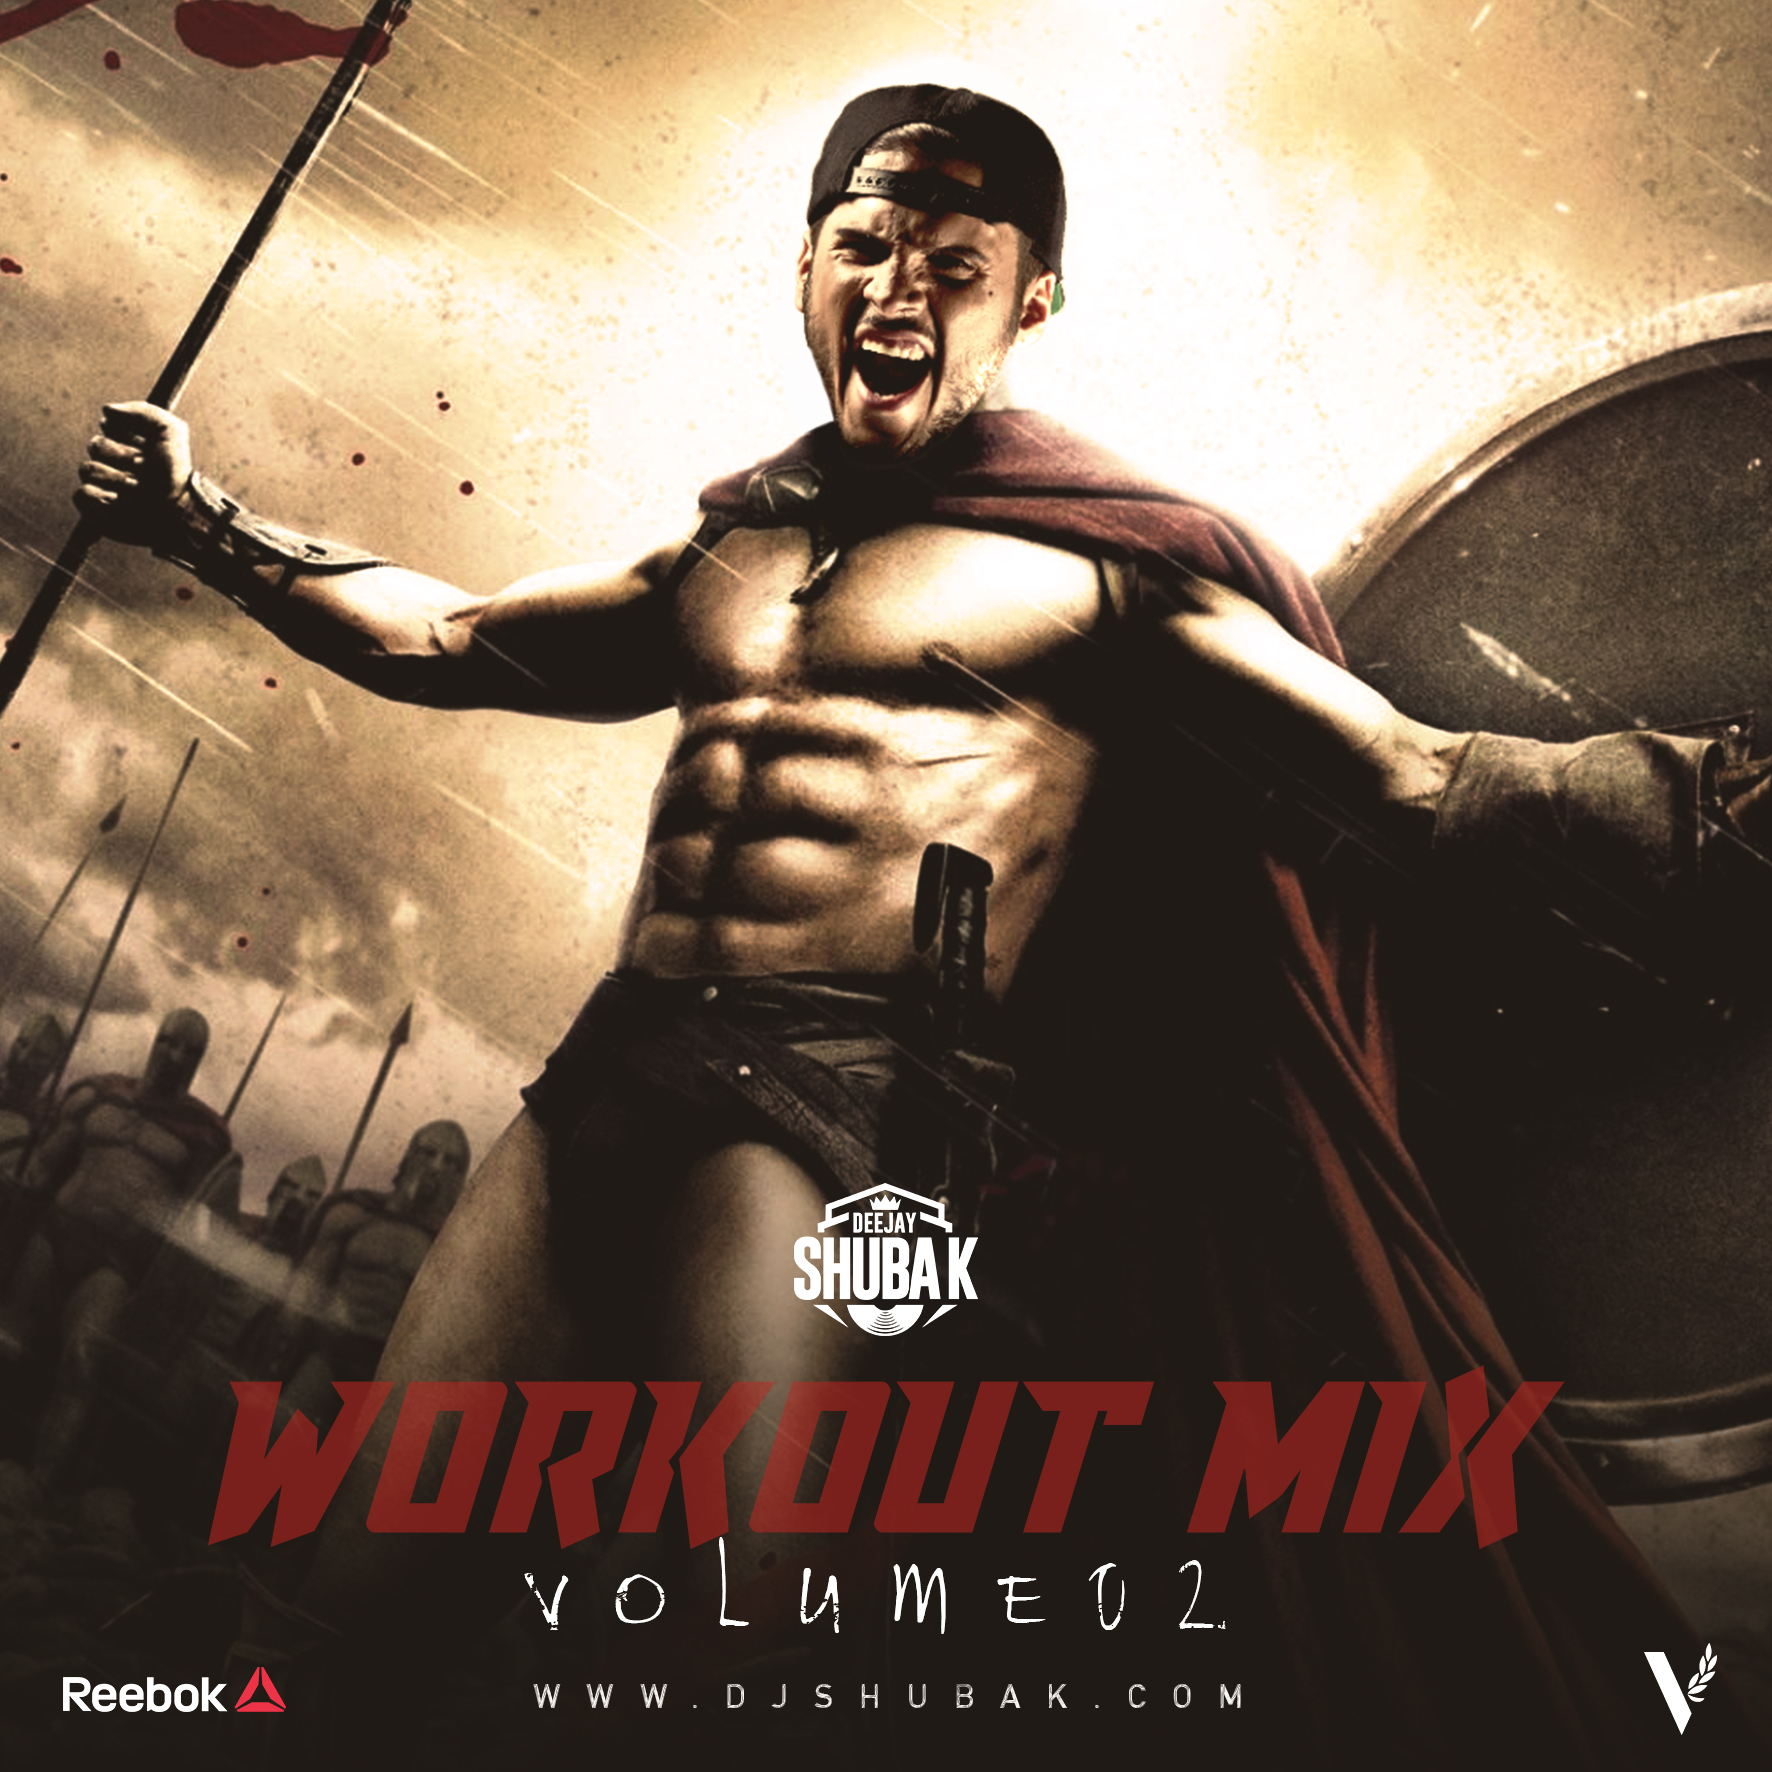 WORKOUT_MIX_DJ_SHUBA_K_PODCAST_MIXTAPE